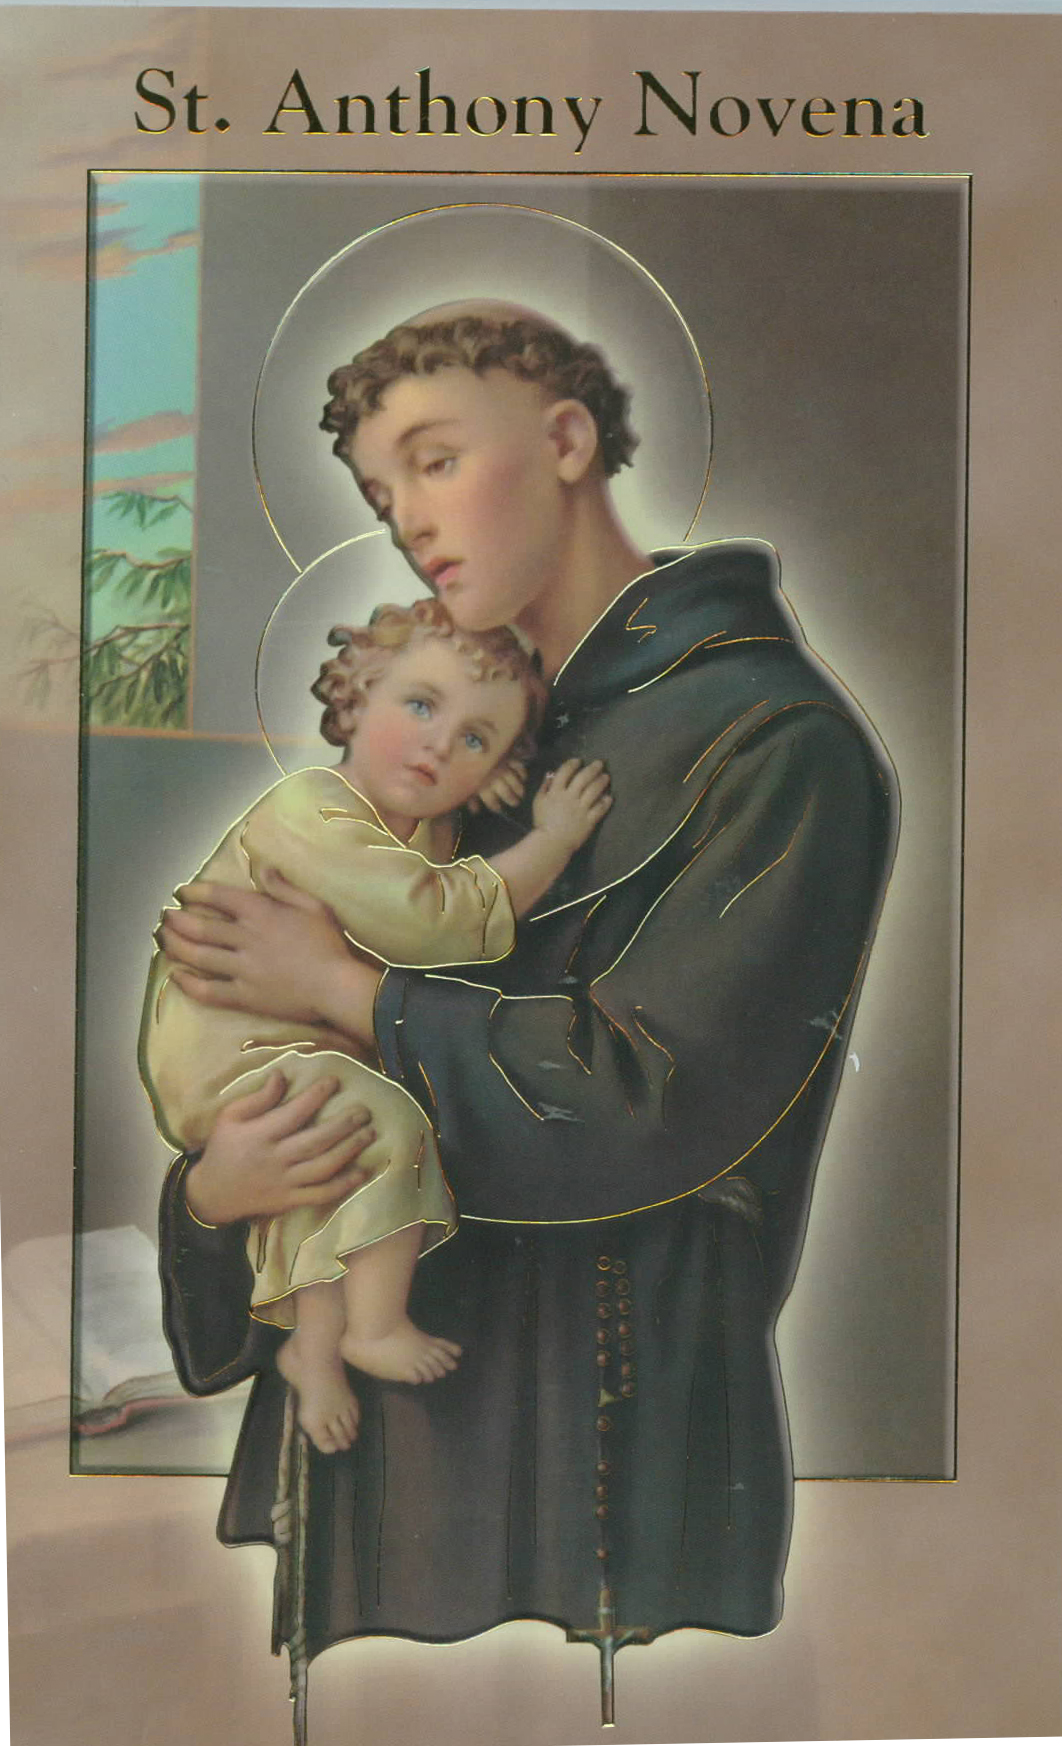 "St. Anthony Novena & Prayers Book 12-2432-300 is 3.75"" x 5-7/8"" and 24 pages beautifully illustrated with Italian Fratelli-Bonella Artwork and original text by Daniel A. Lord, S.J."